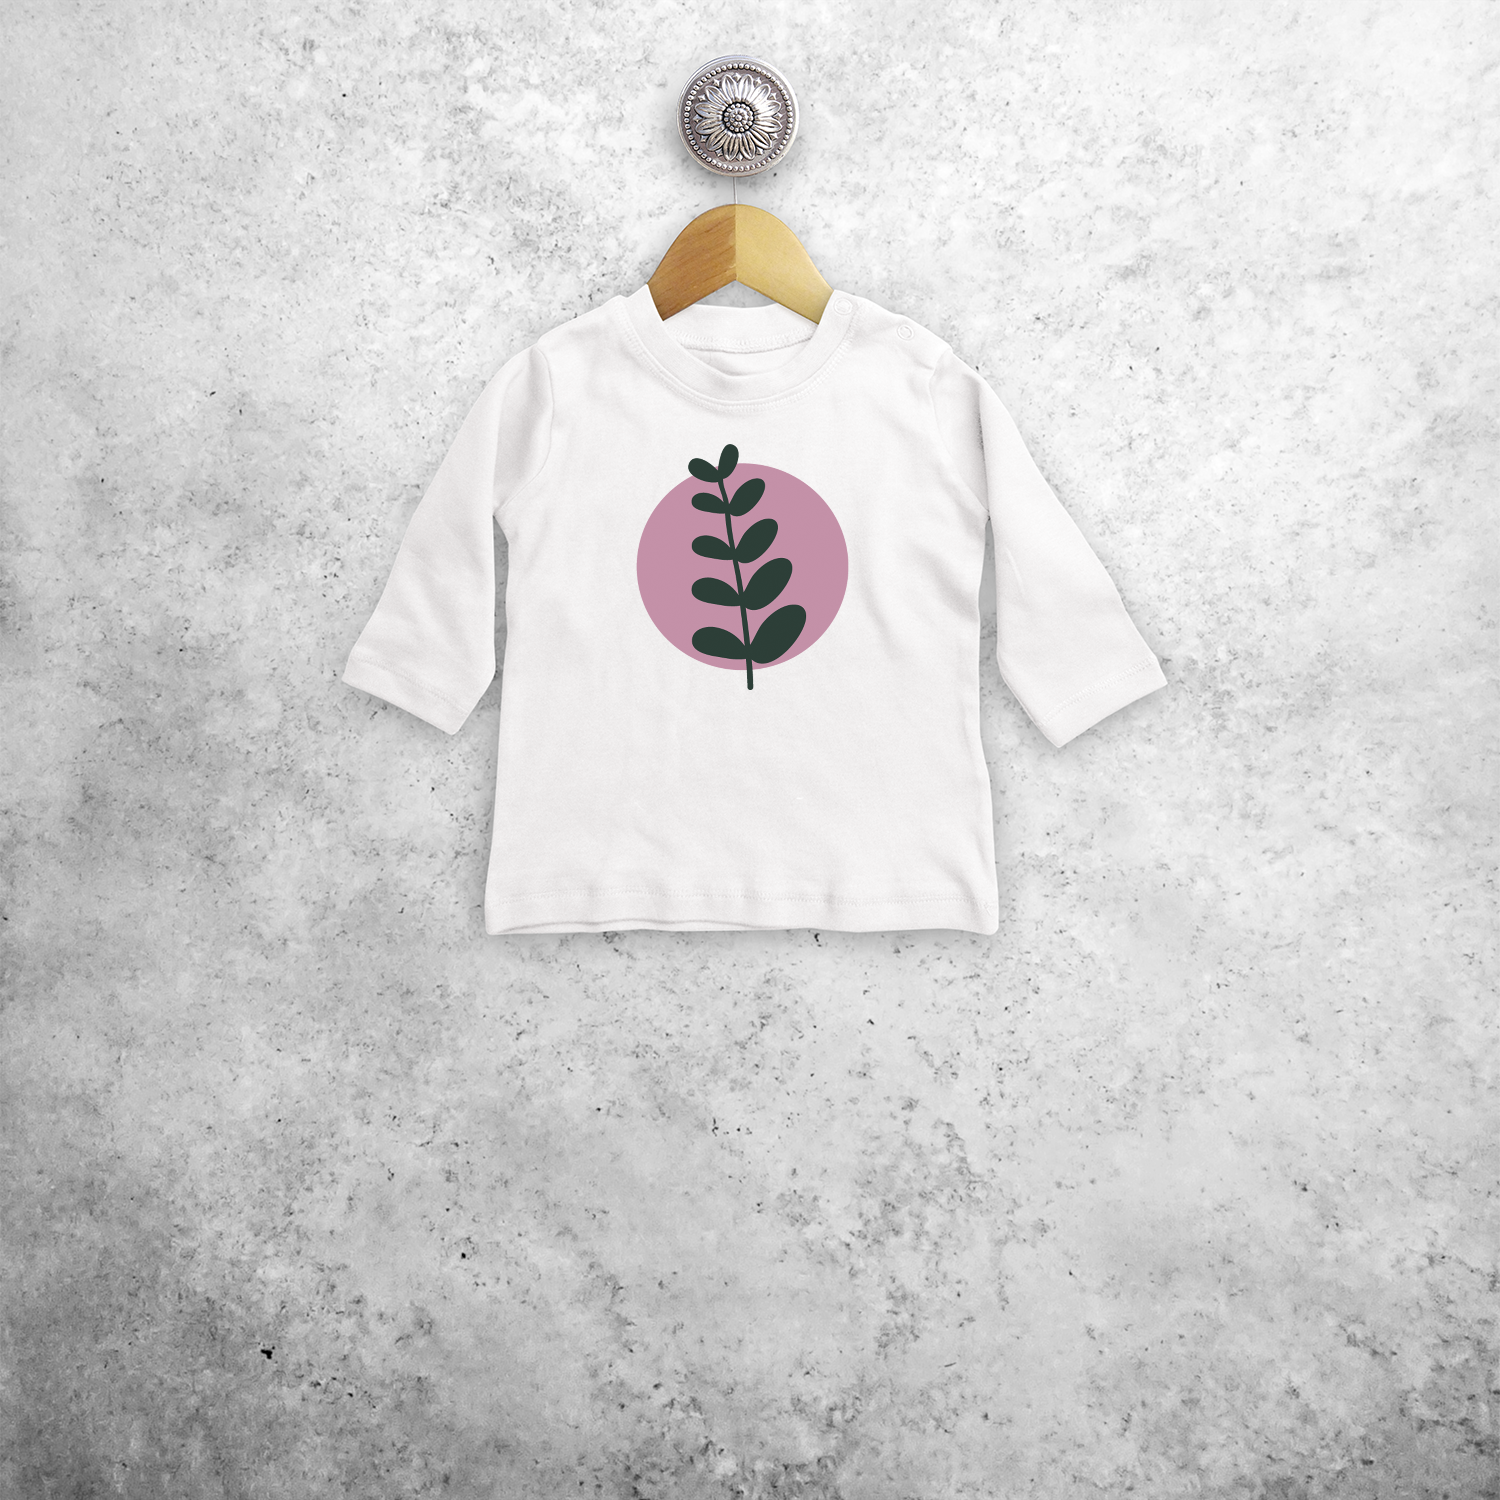 Plant and circle baby longsleeve shirt